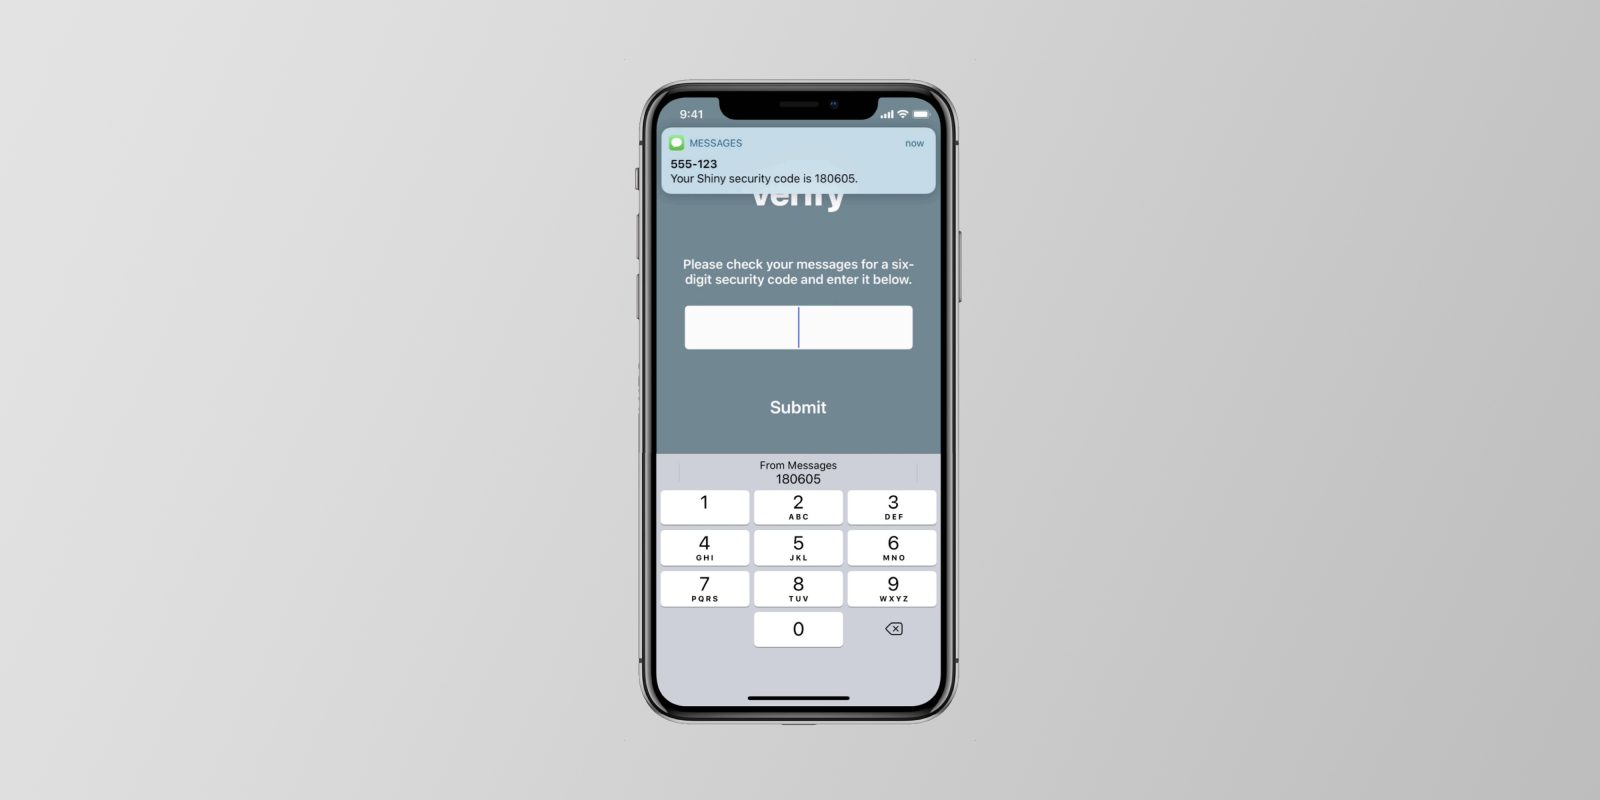 Apple engineer explains how the incredibly useful Security Code AutoFill feature came to be